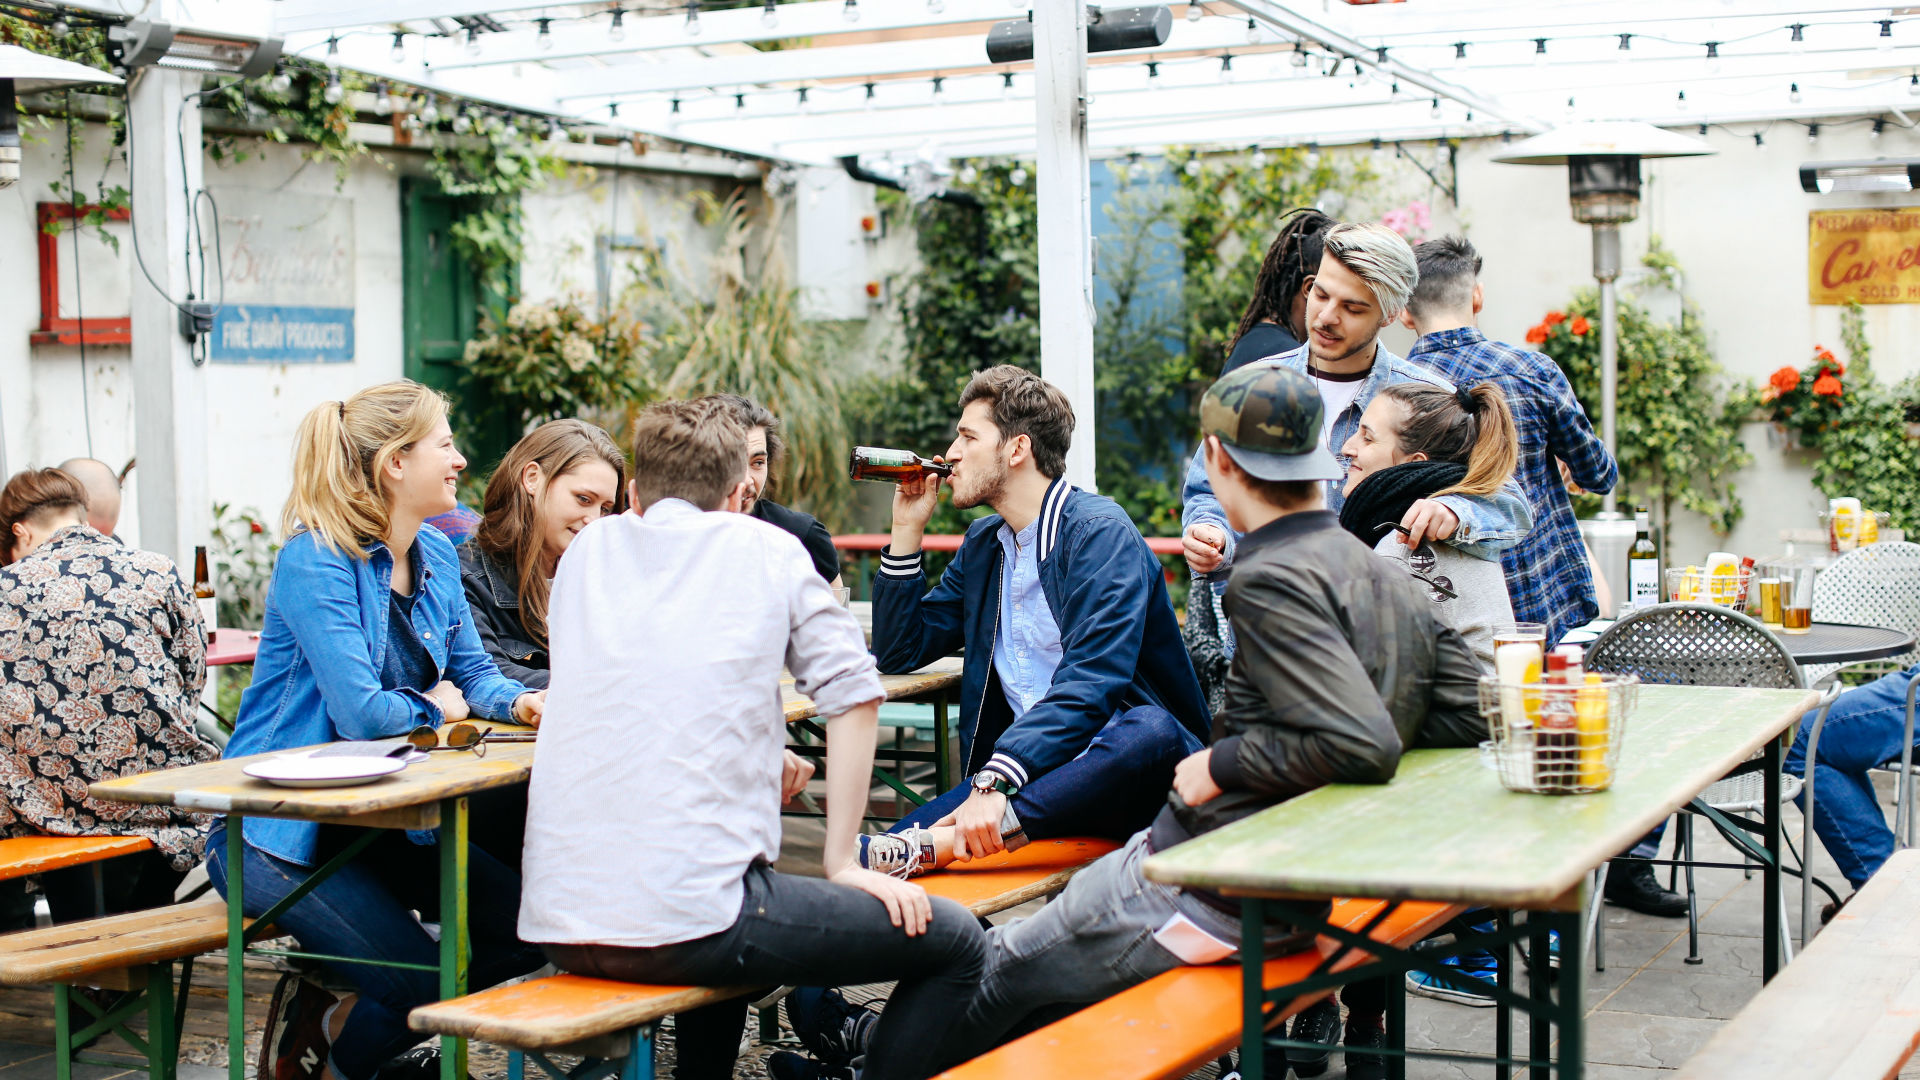 A group of customers enjoy a chat in the Crown & Shuttle's beer garden. Image courtesy of Crown & Shuttle.